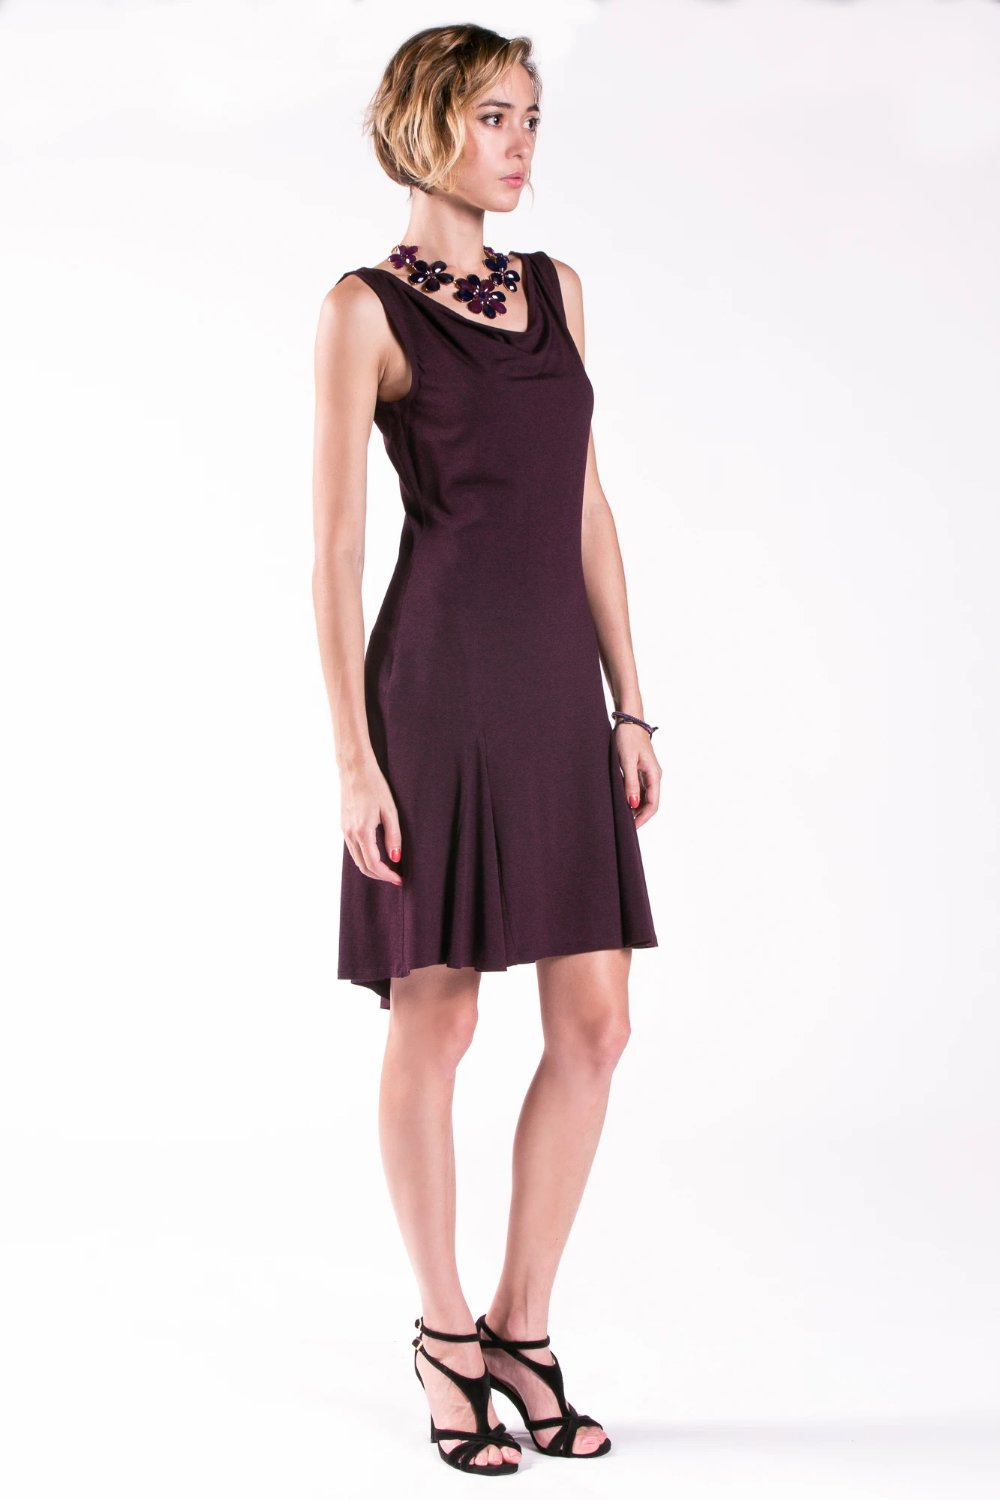 Ana Cowl Neck Sleeveless Tango Dress with Godet Back